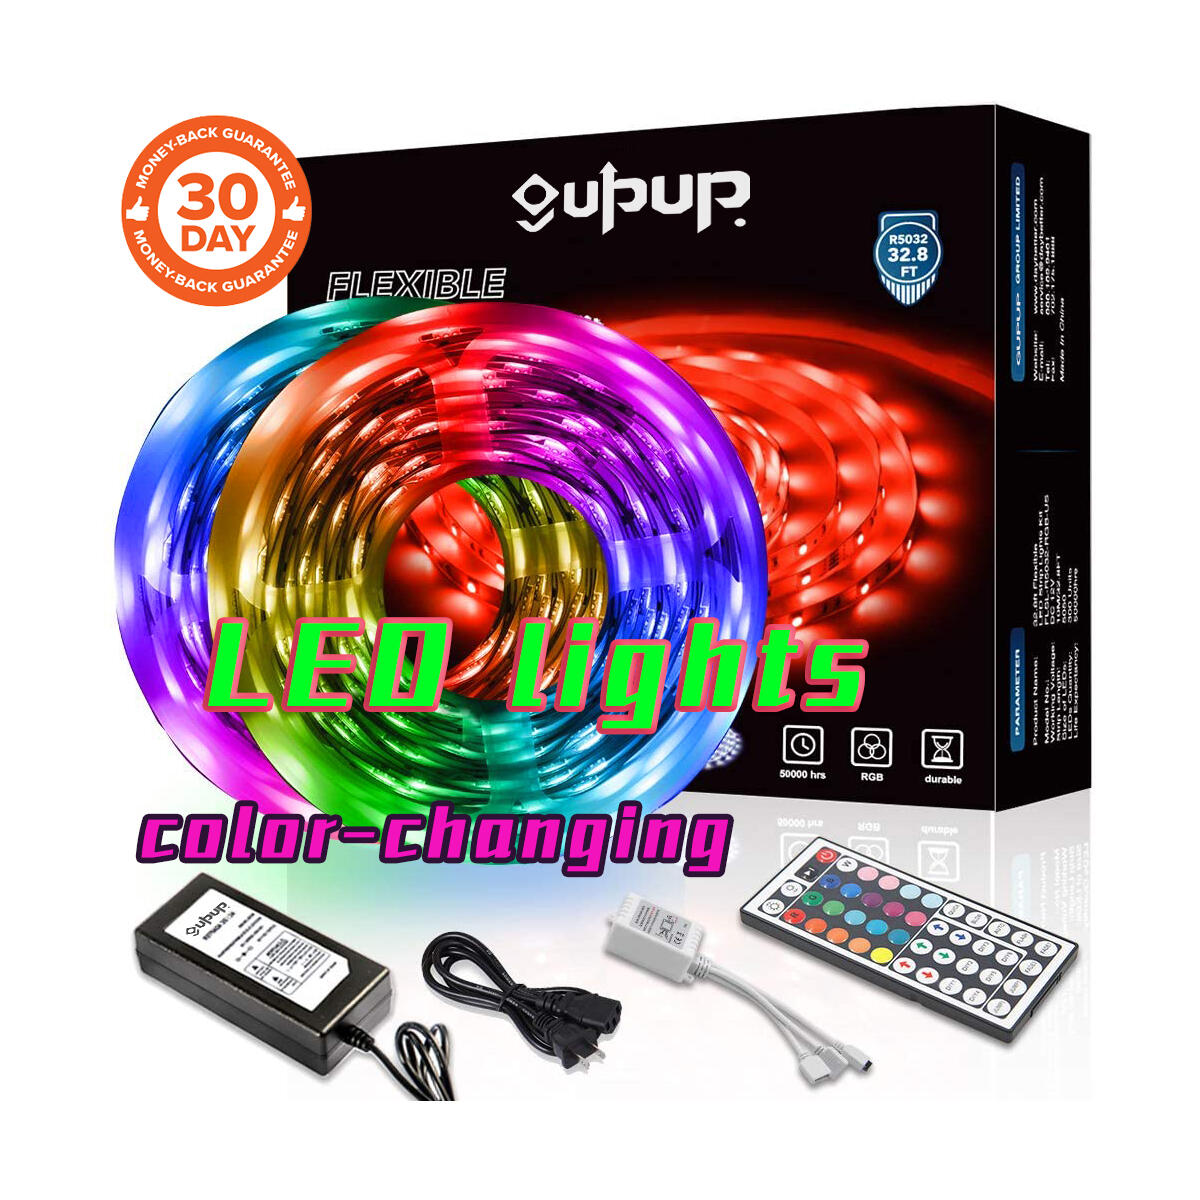 LED Strip Lights, 5050 Color-Changing Rope Lights ,Only for 32.8 feet